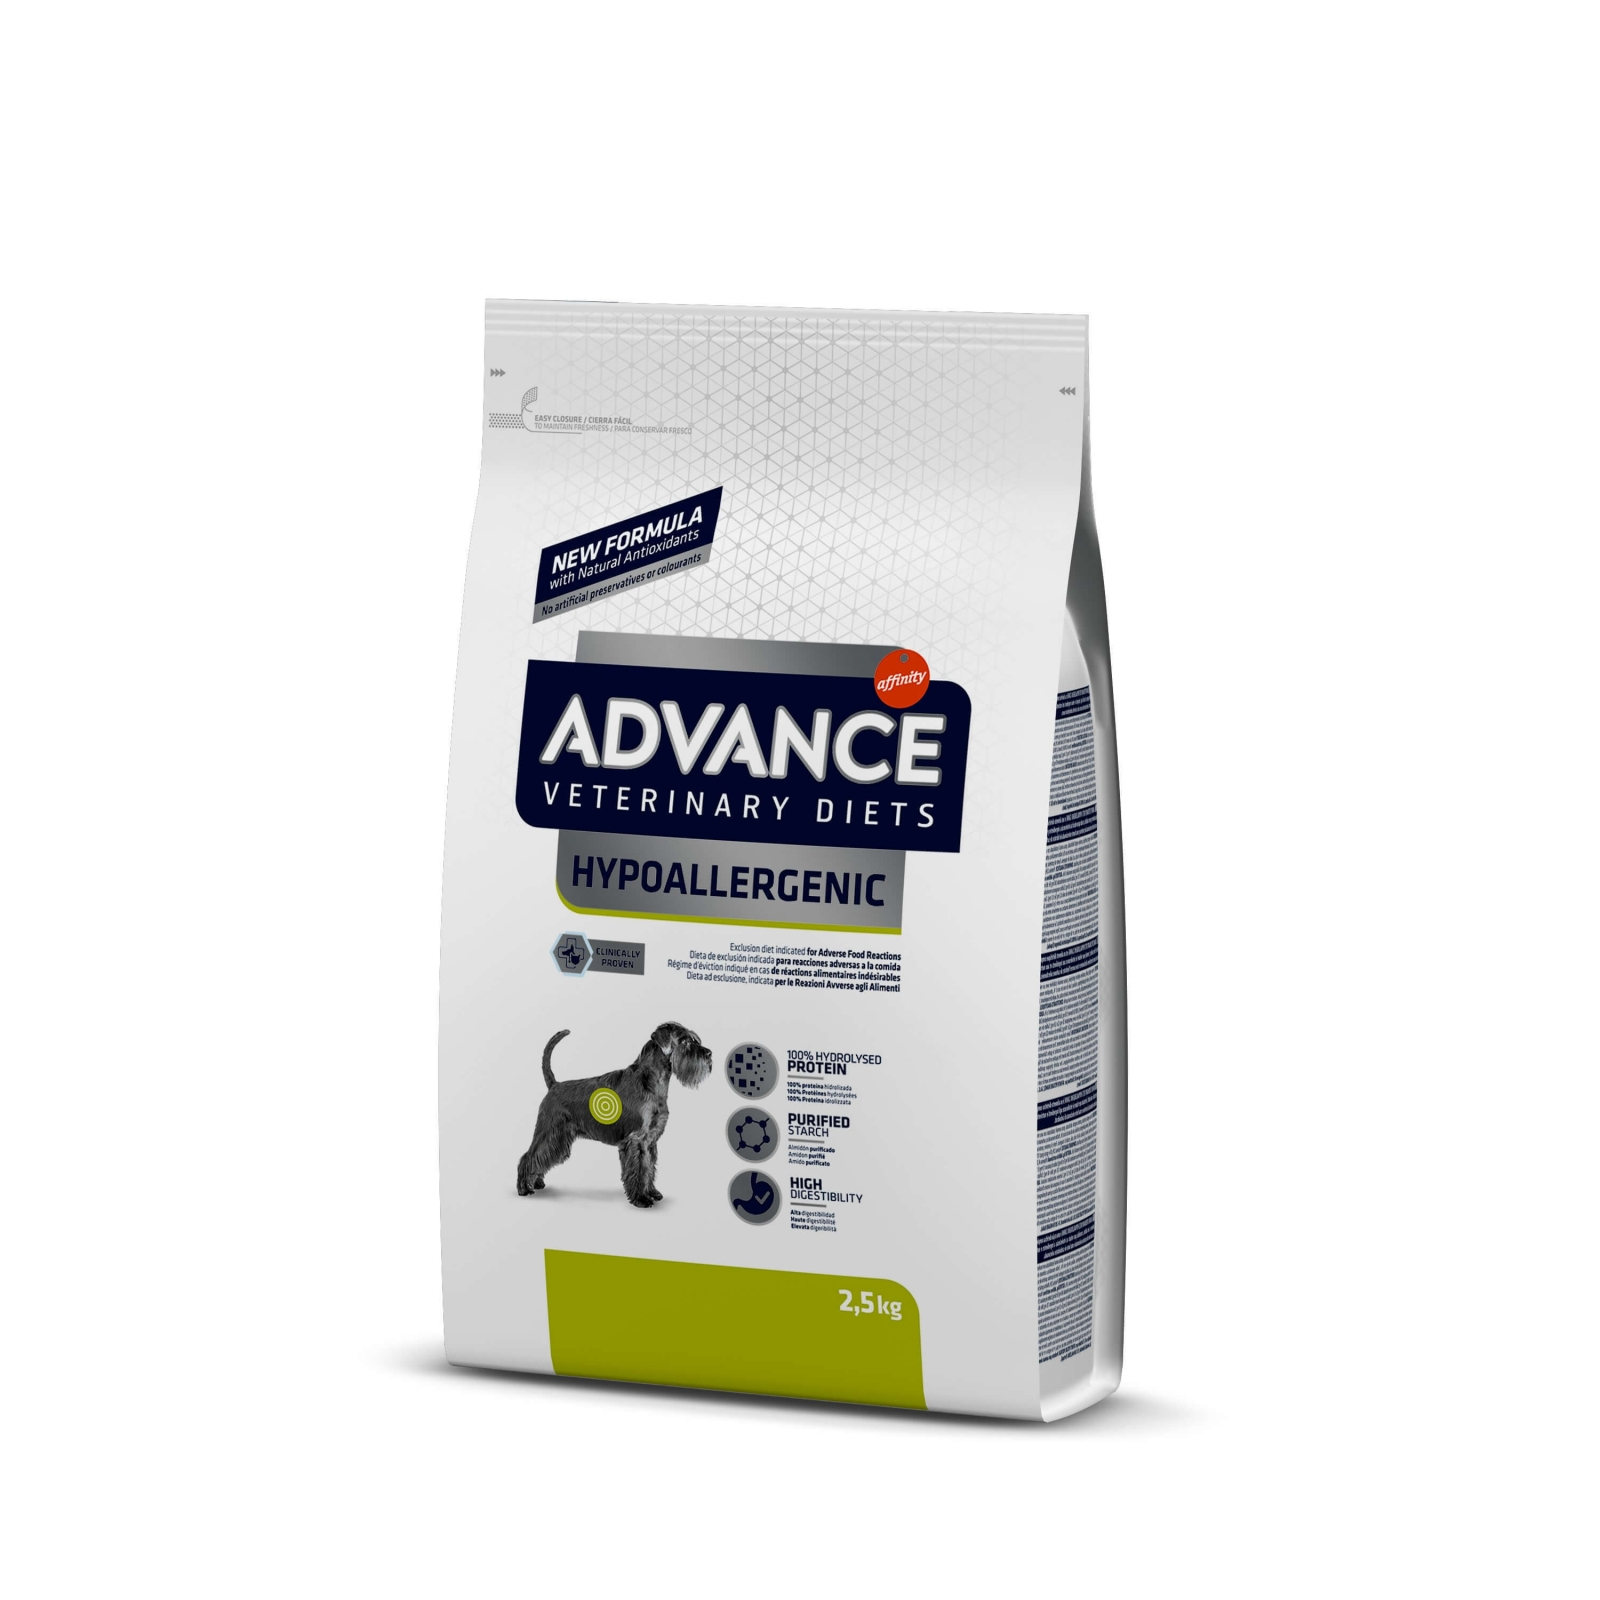 Advance VD Dog Hypoallergenic, 2.5 kg